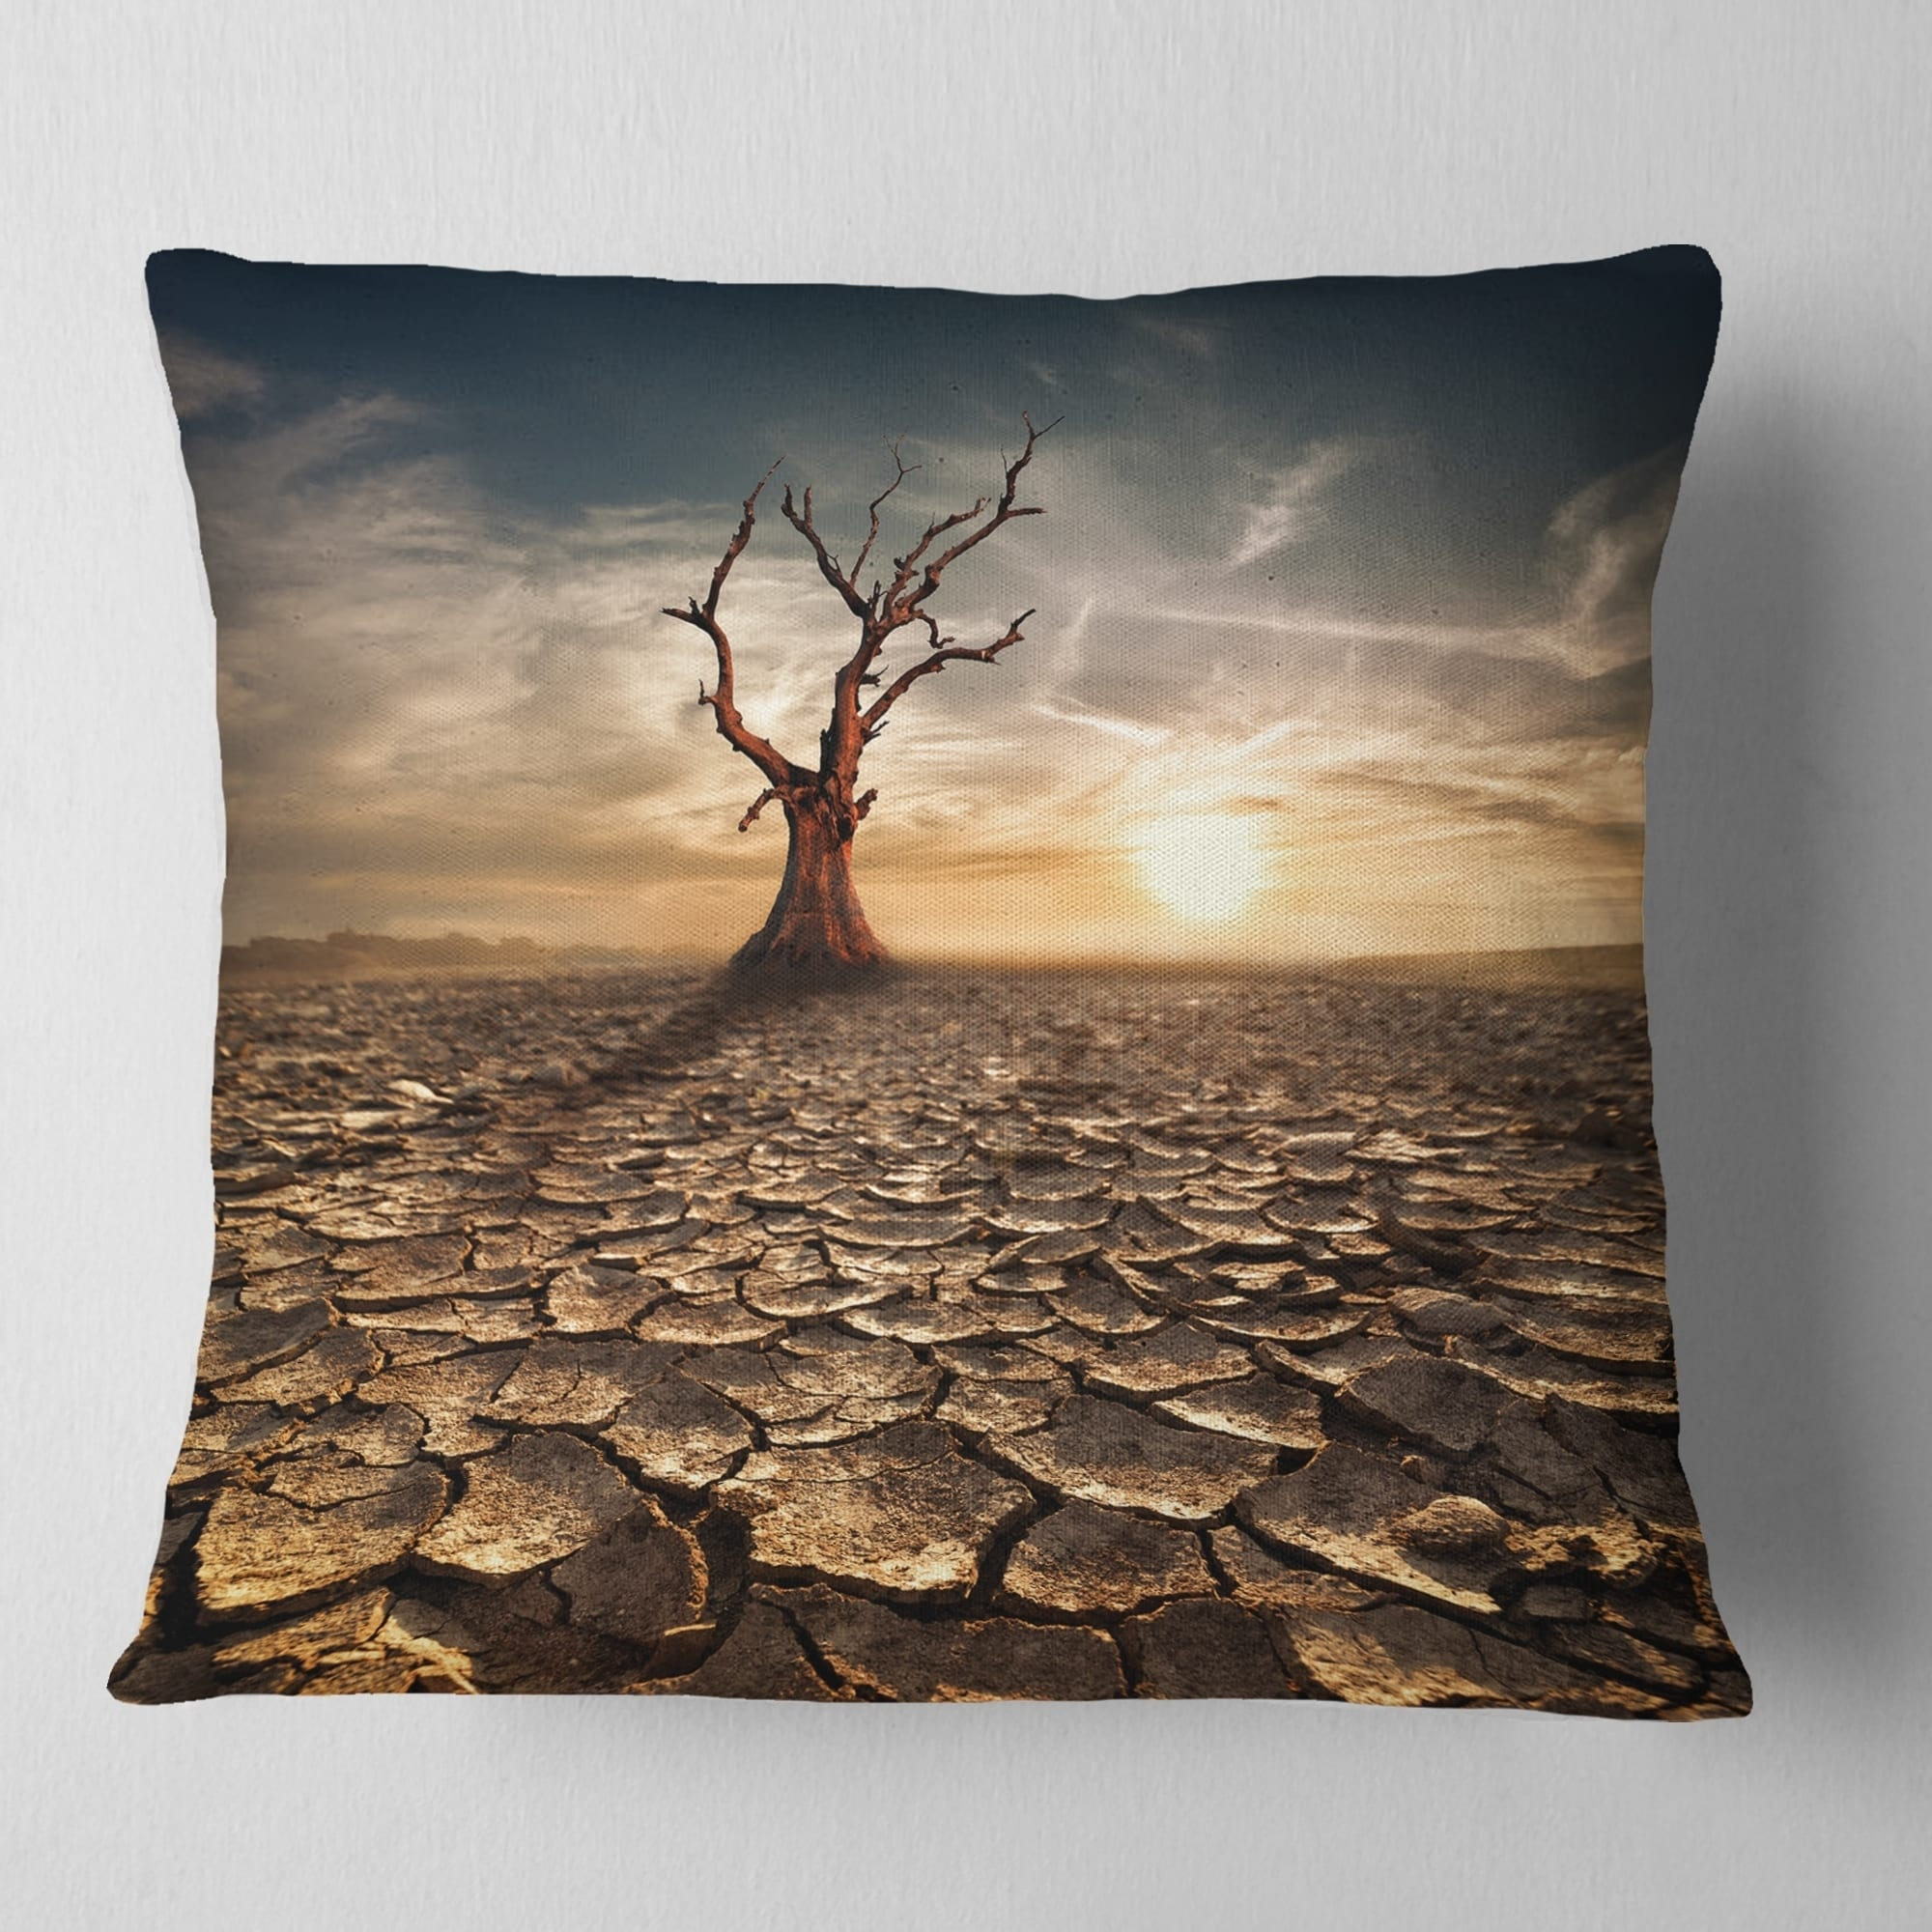 Designart Lonely Dead Tree In Cracked Land Landscape Printed Throw Pillow On Sale Overstock 20950075